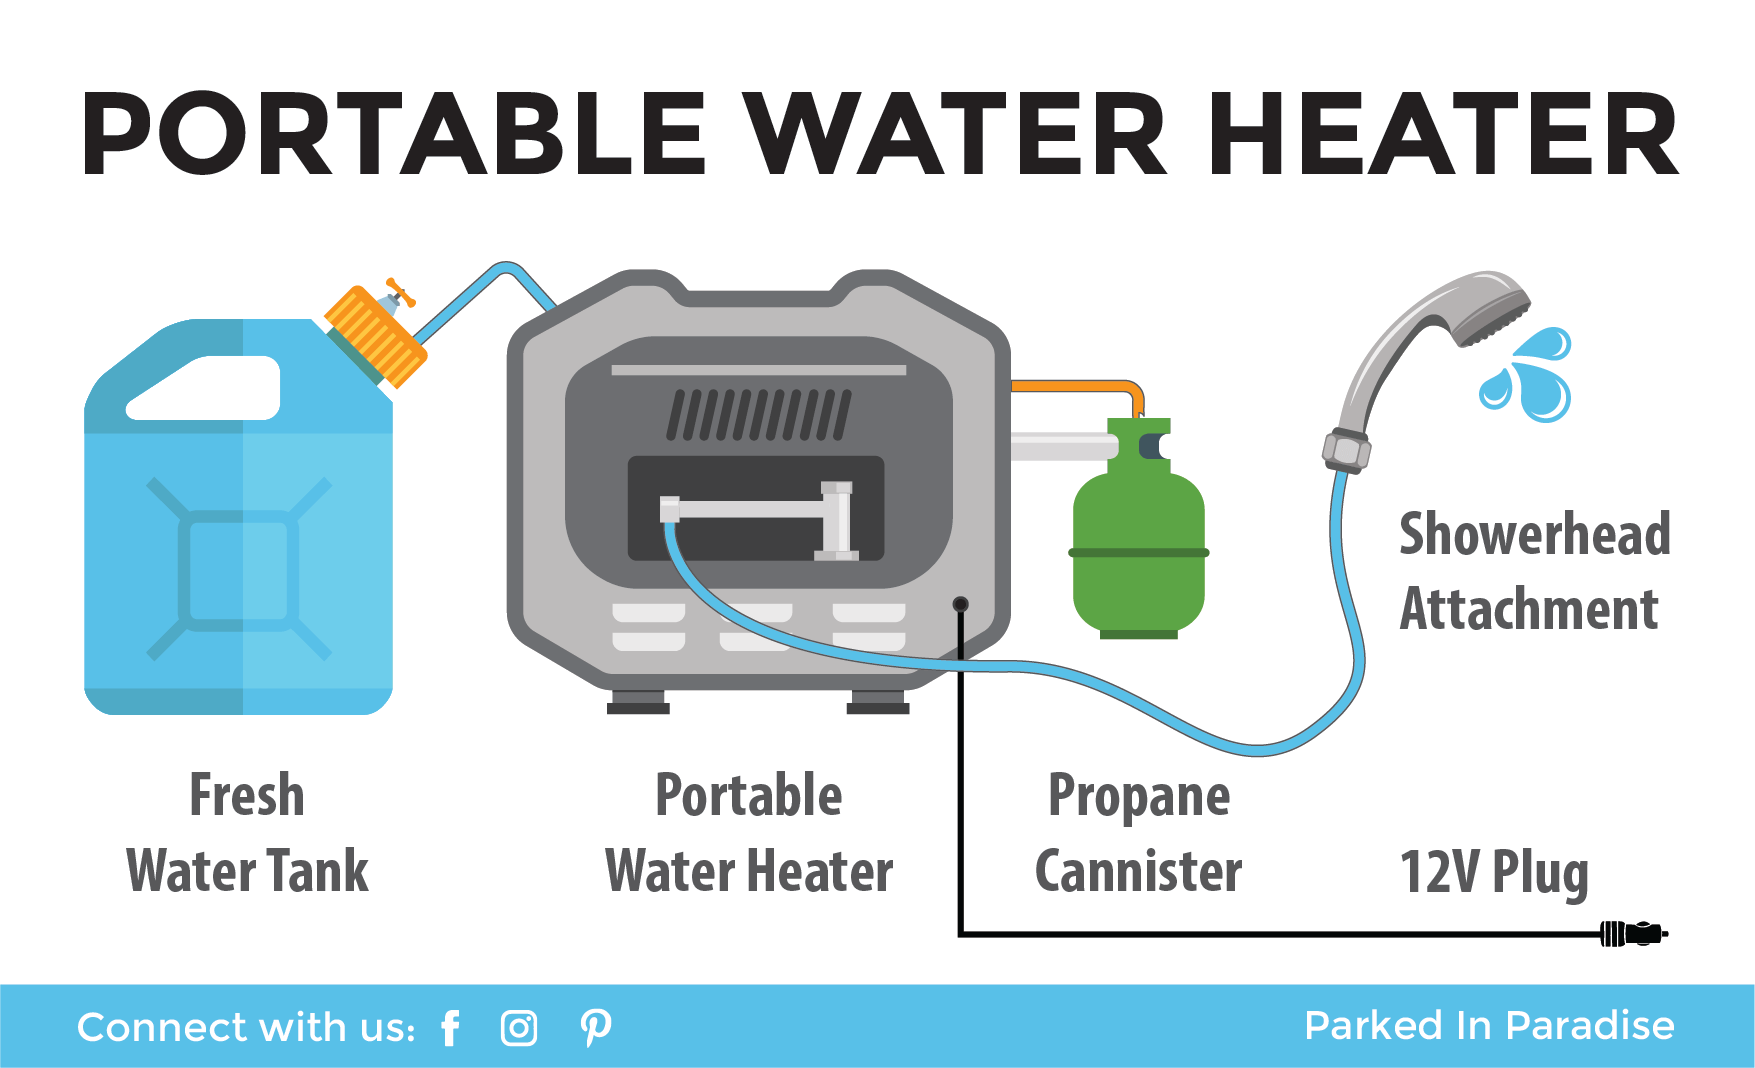 Parts of a camping portable water heater for showers and sinks